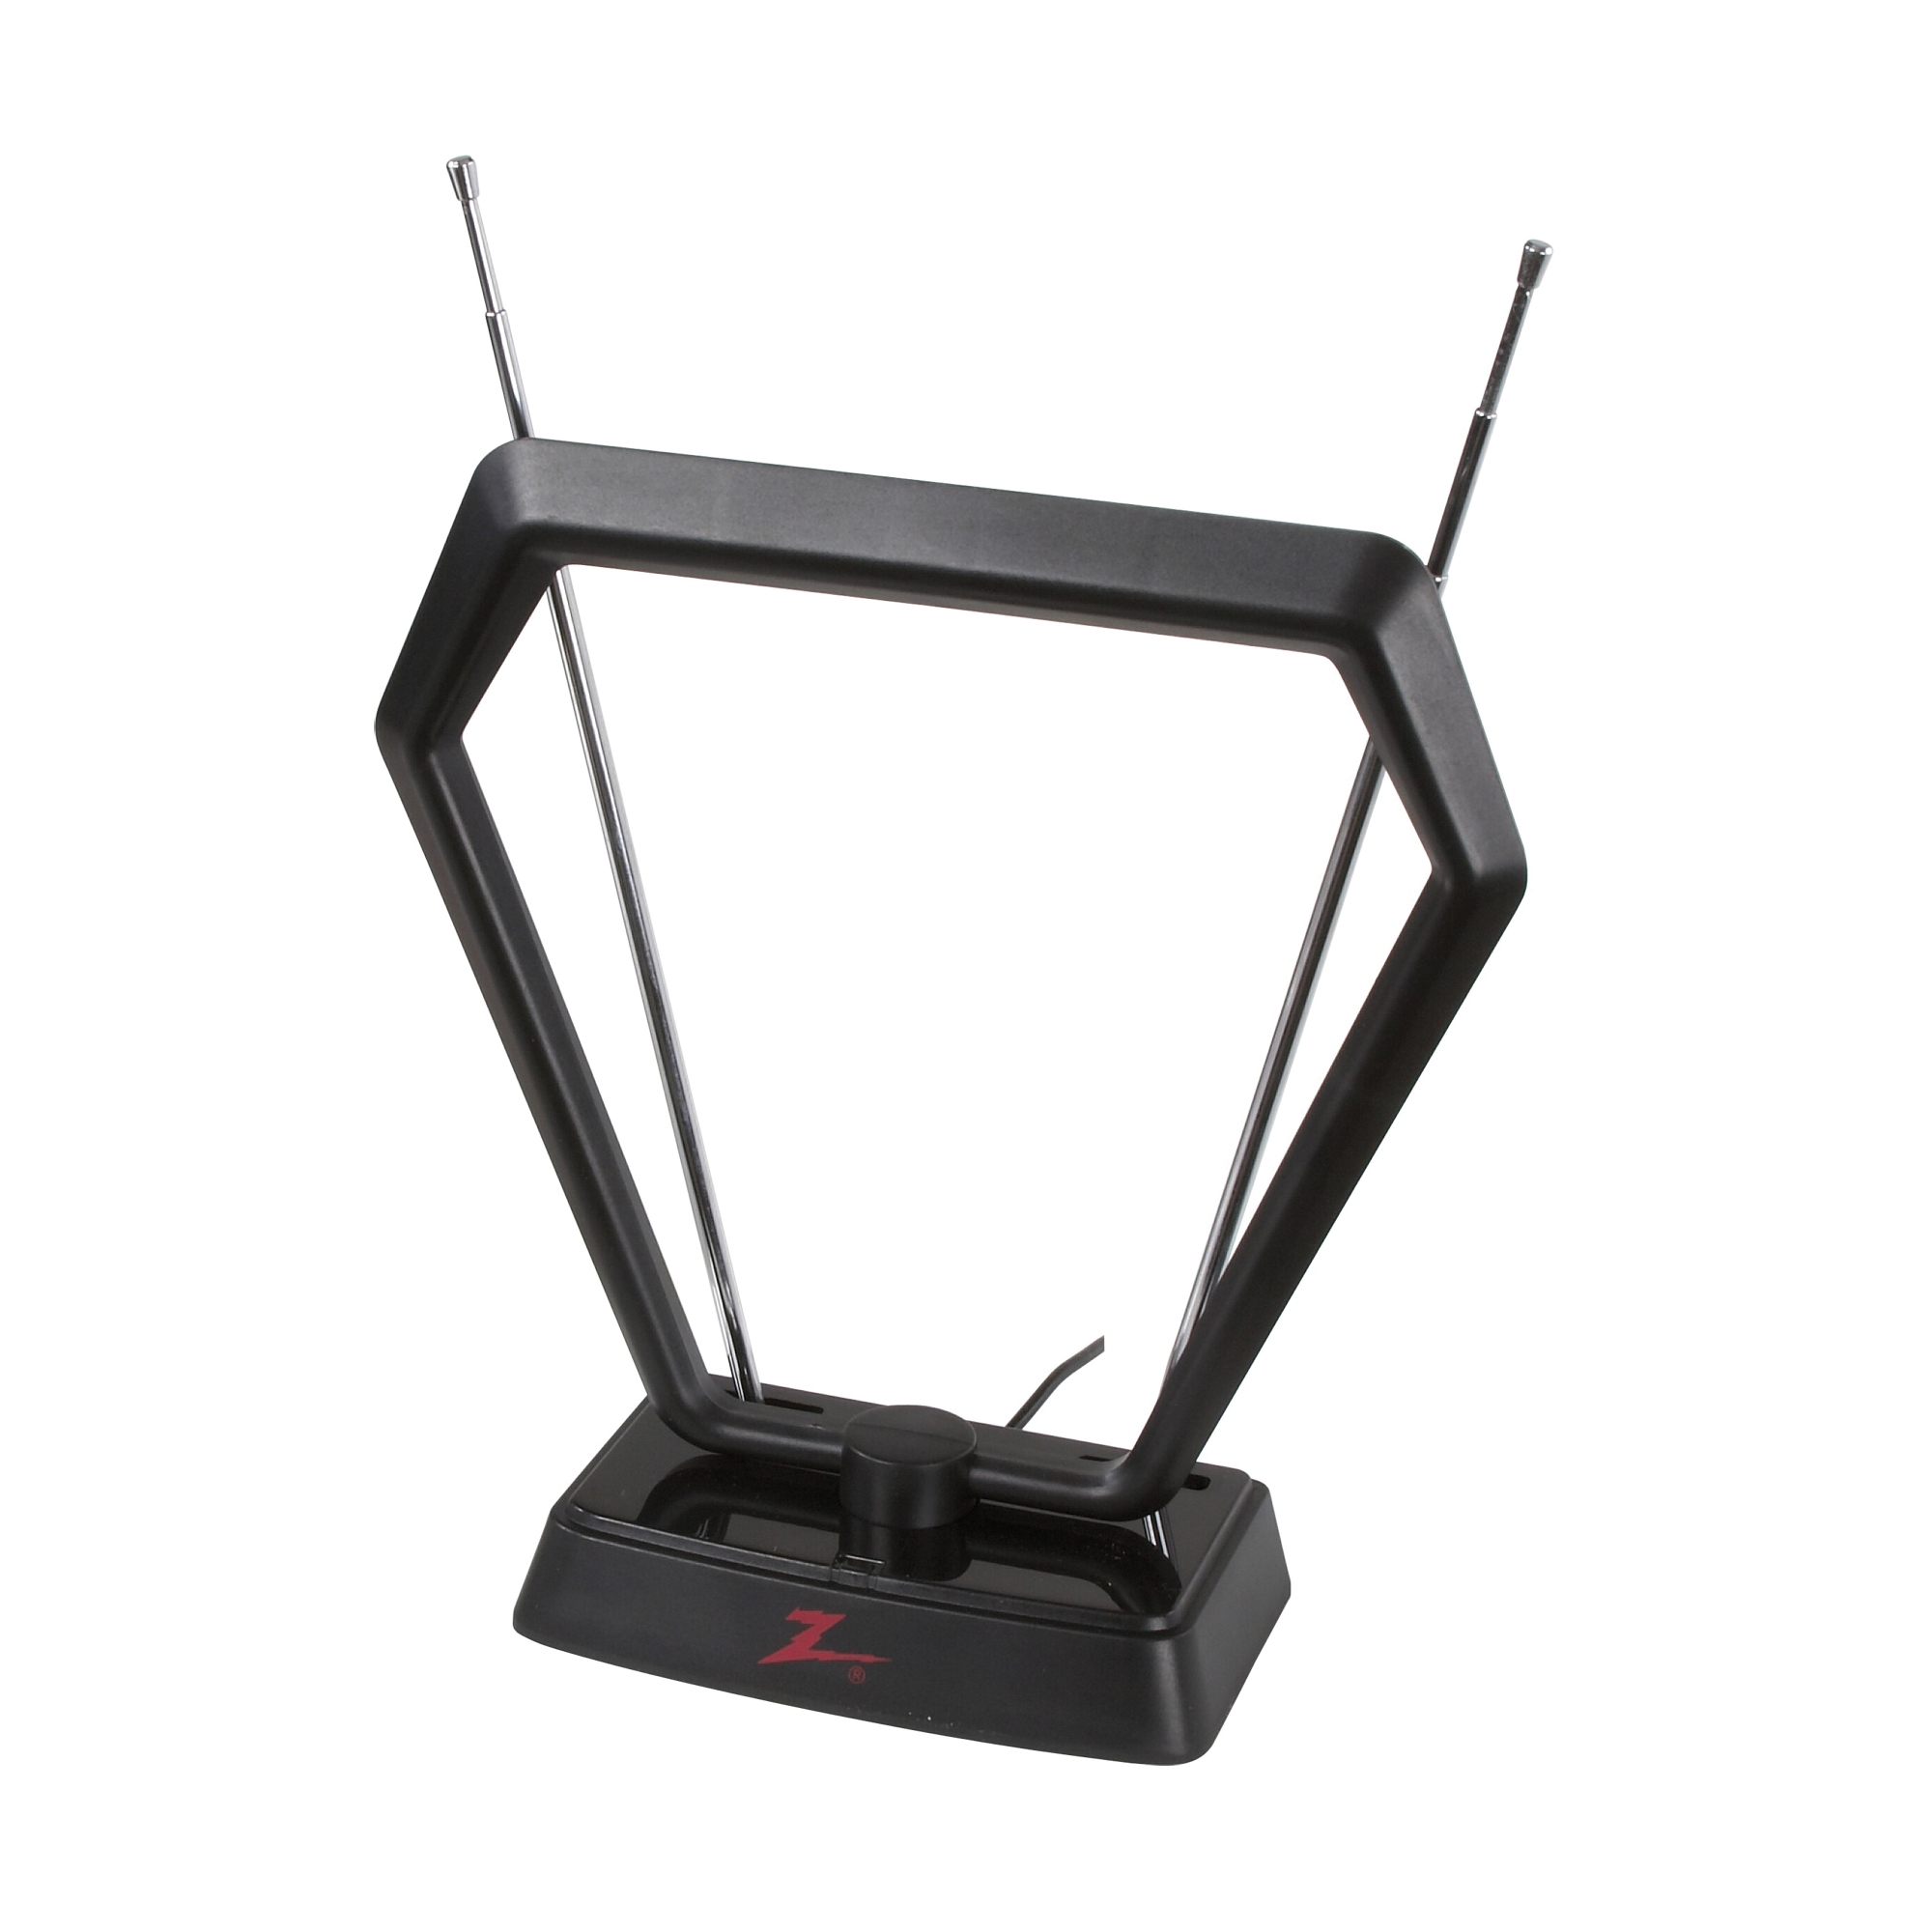 Picture of Zenith VN1ANTP2 Indoor Antenna, 47 to 230 MHz VHF/470 to 860 MHz UHF Signal Bandwidth